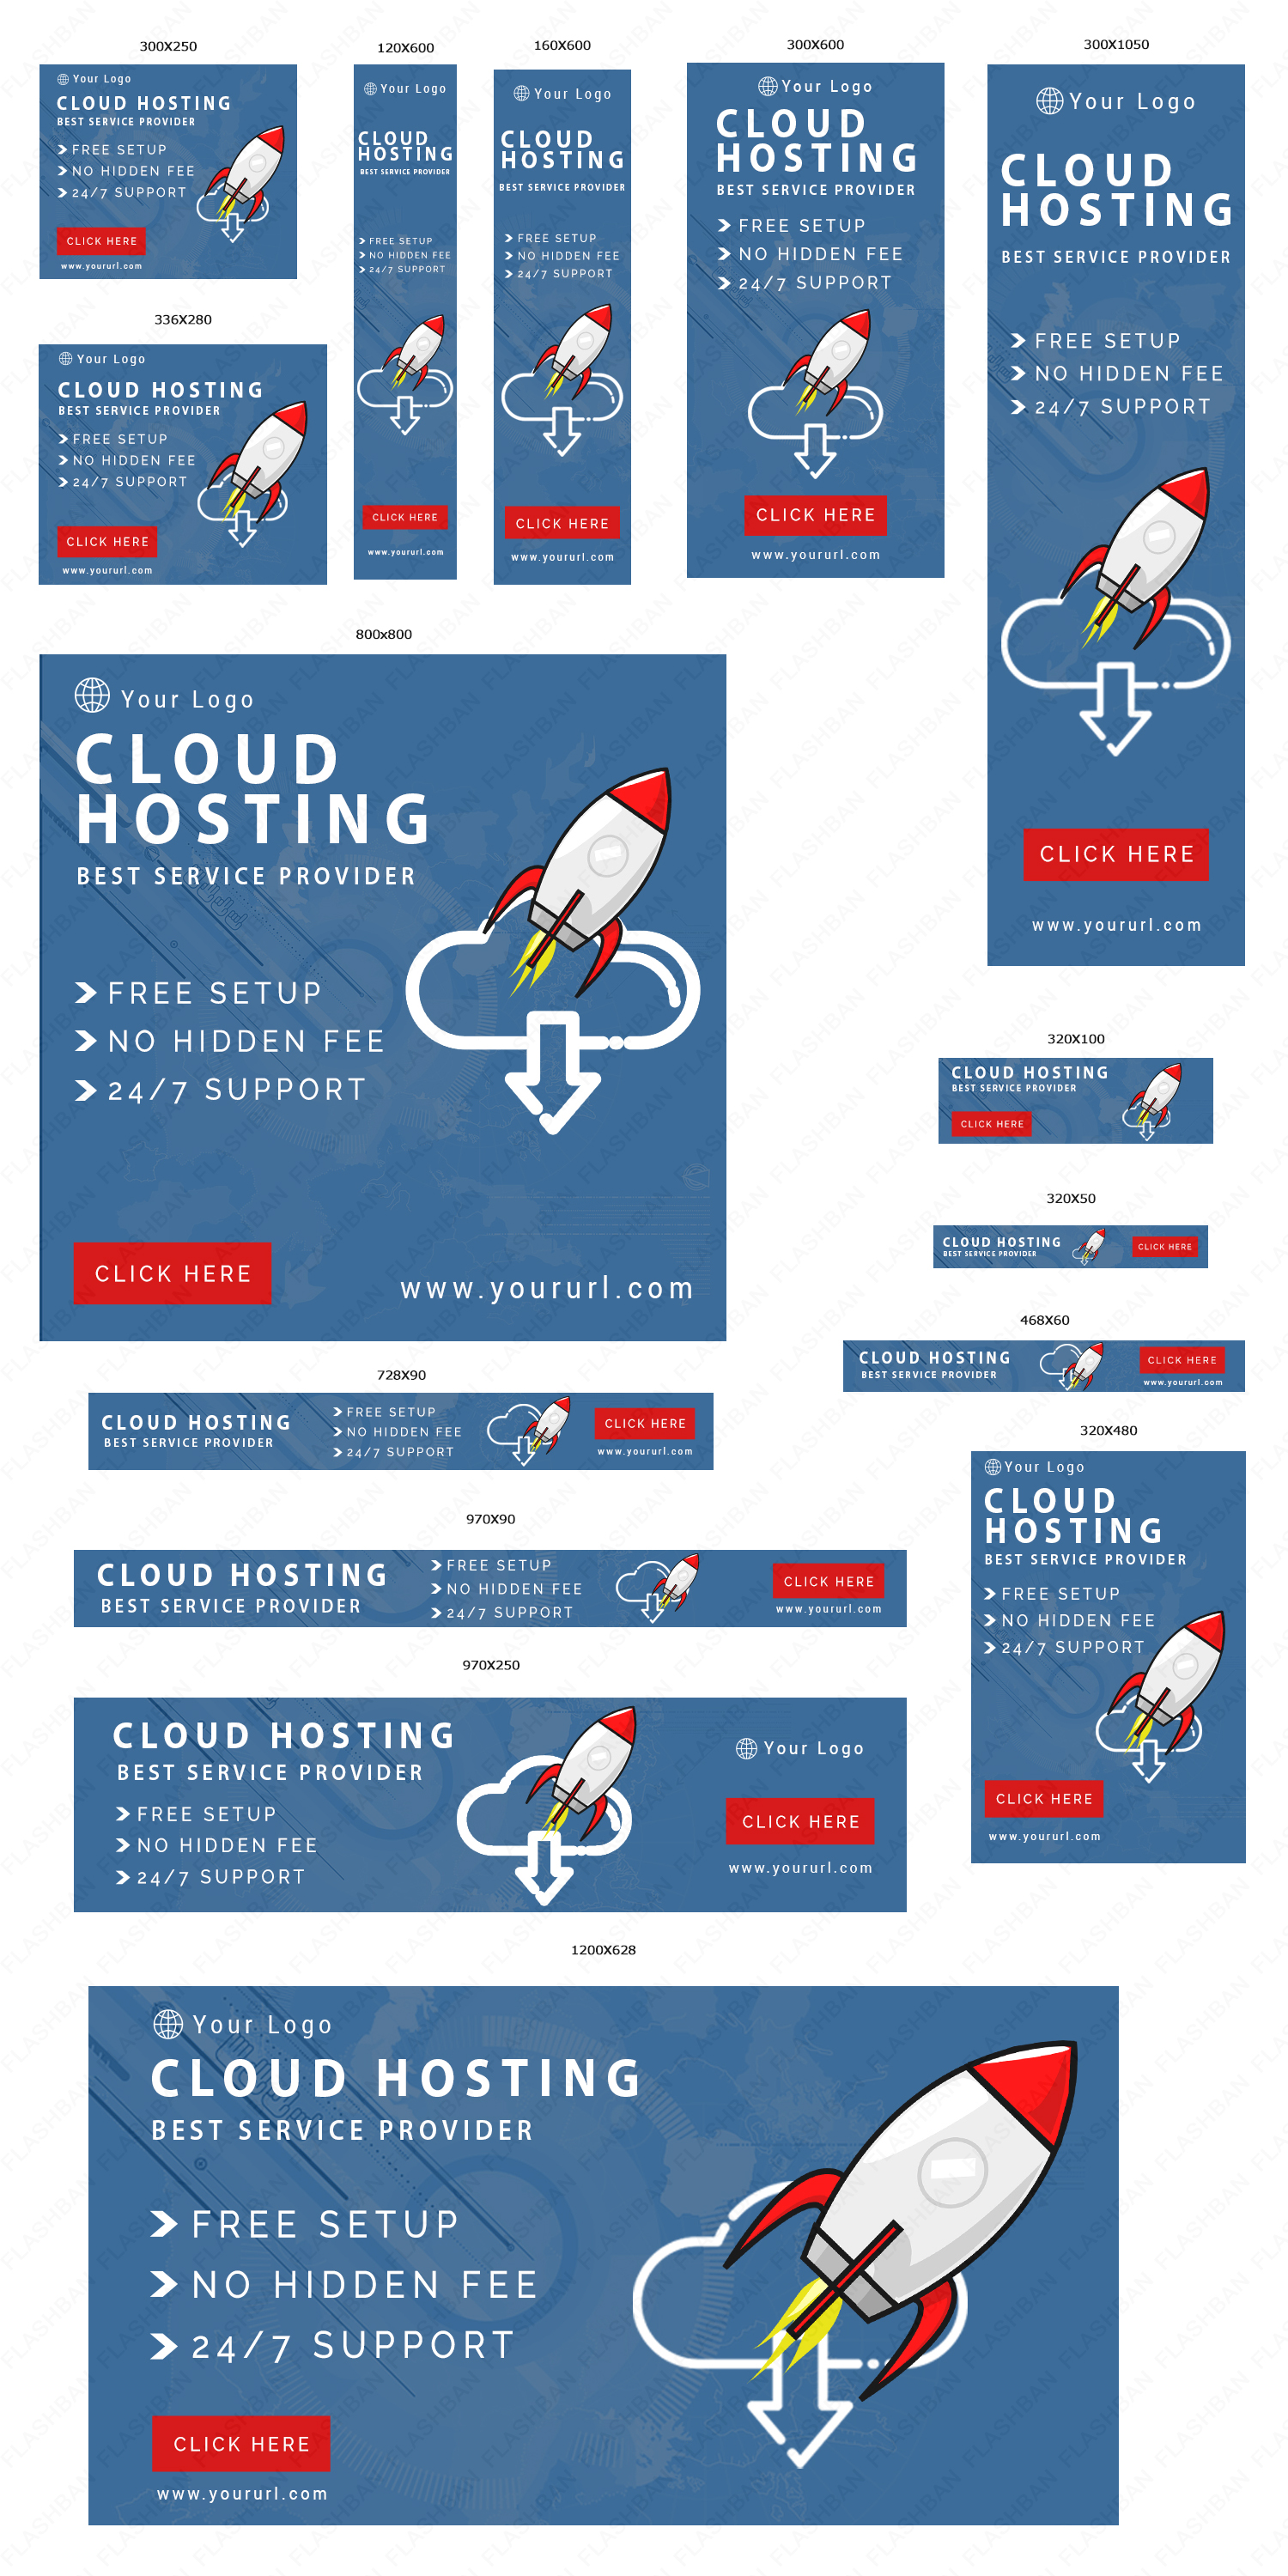 Cloud Hosting AD Banner in 15 different sizes